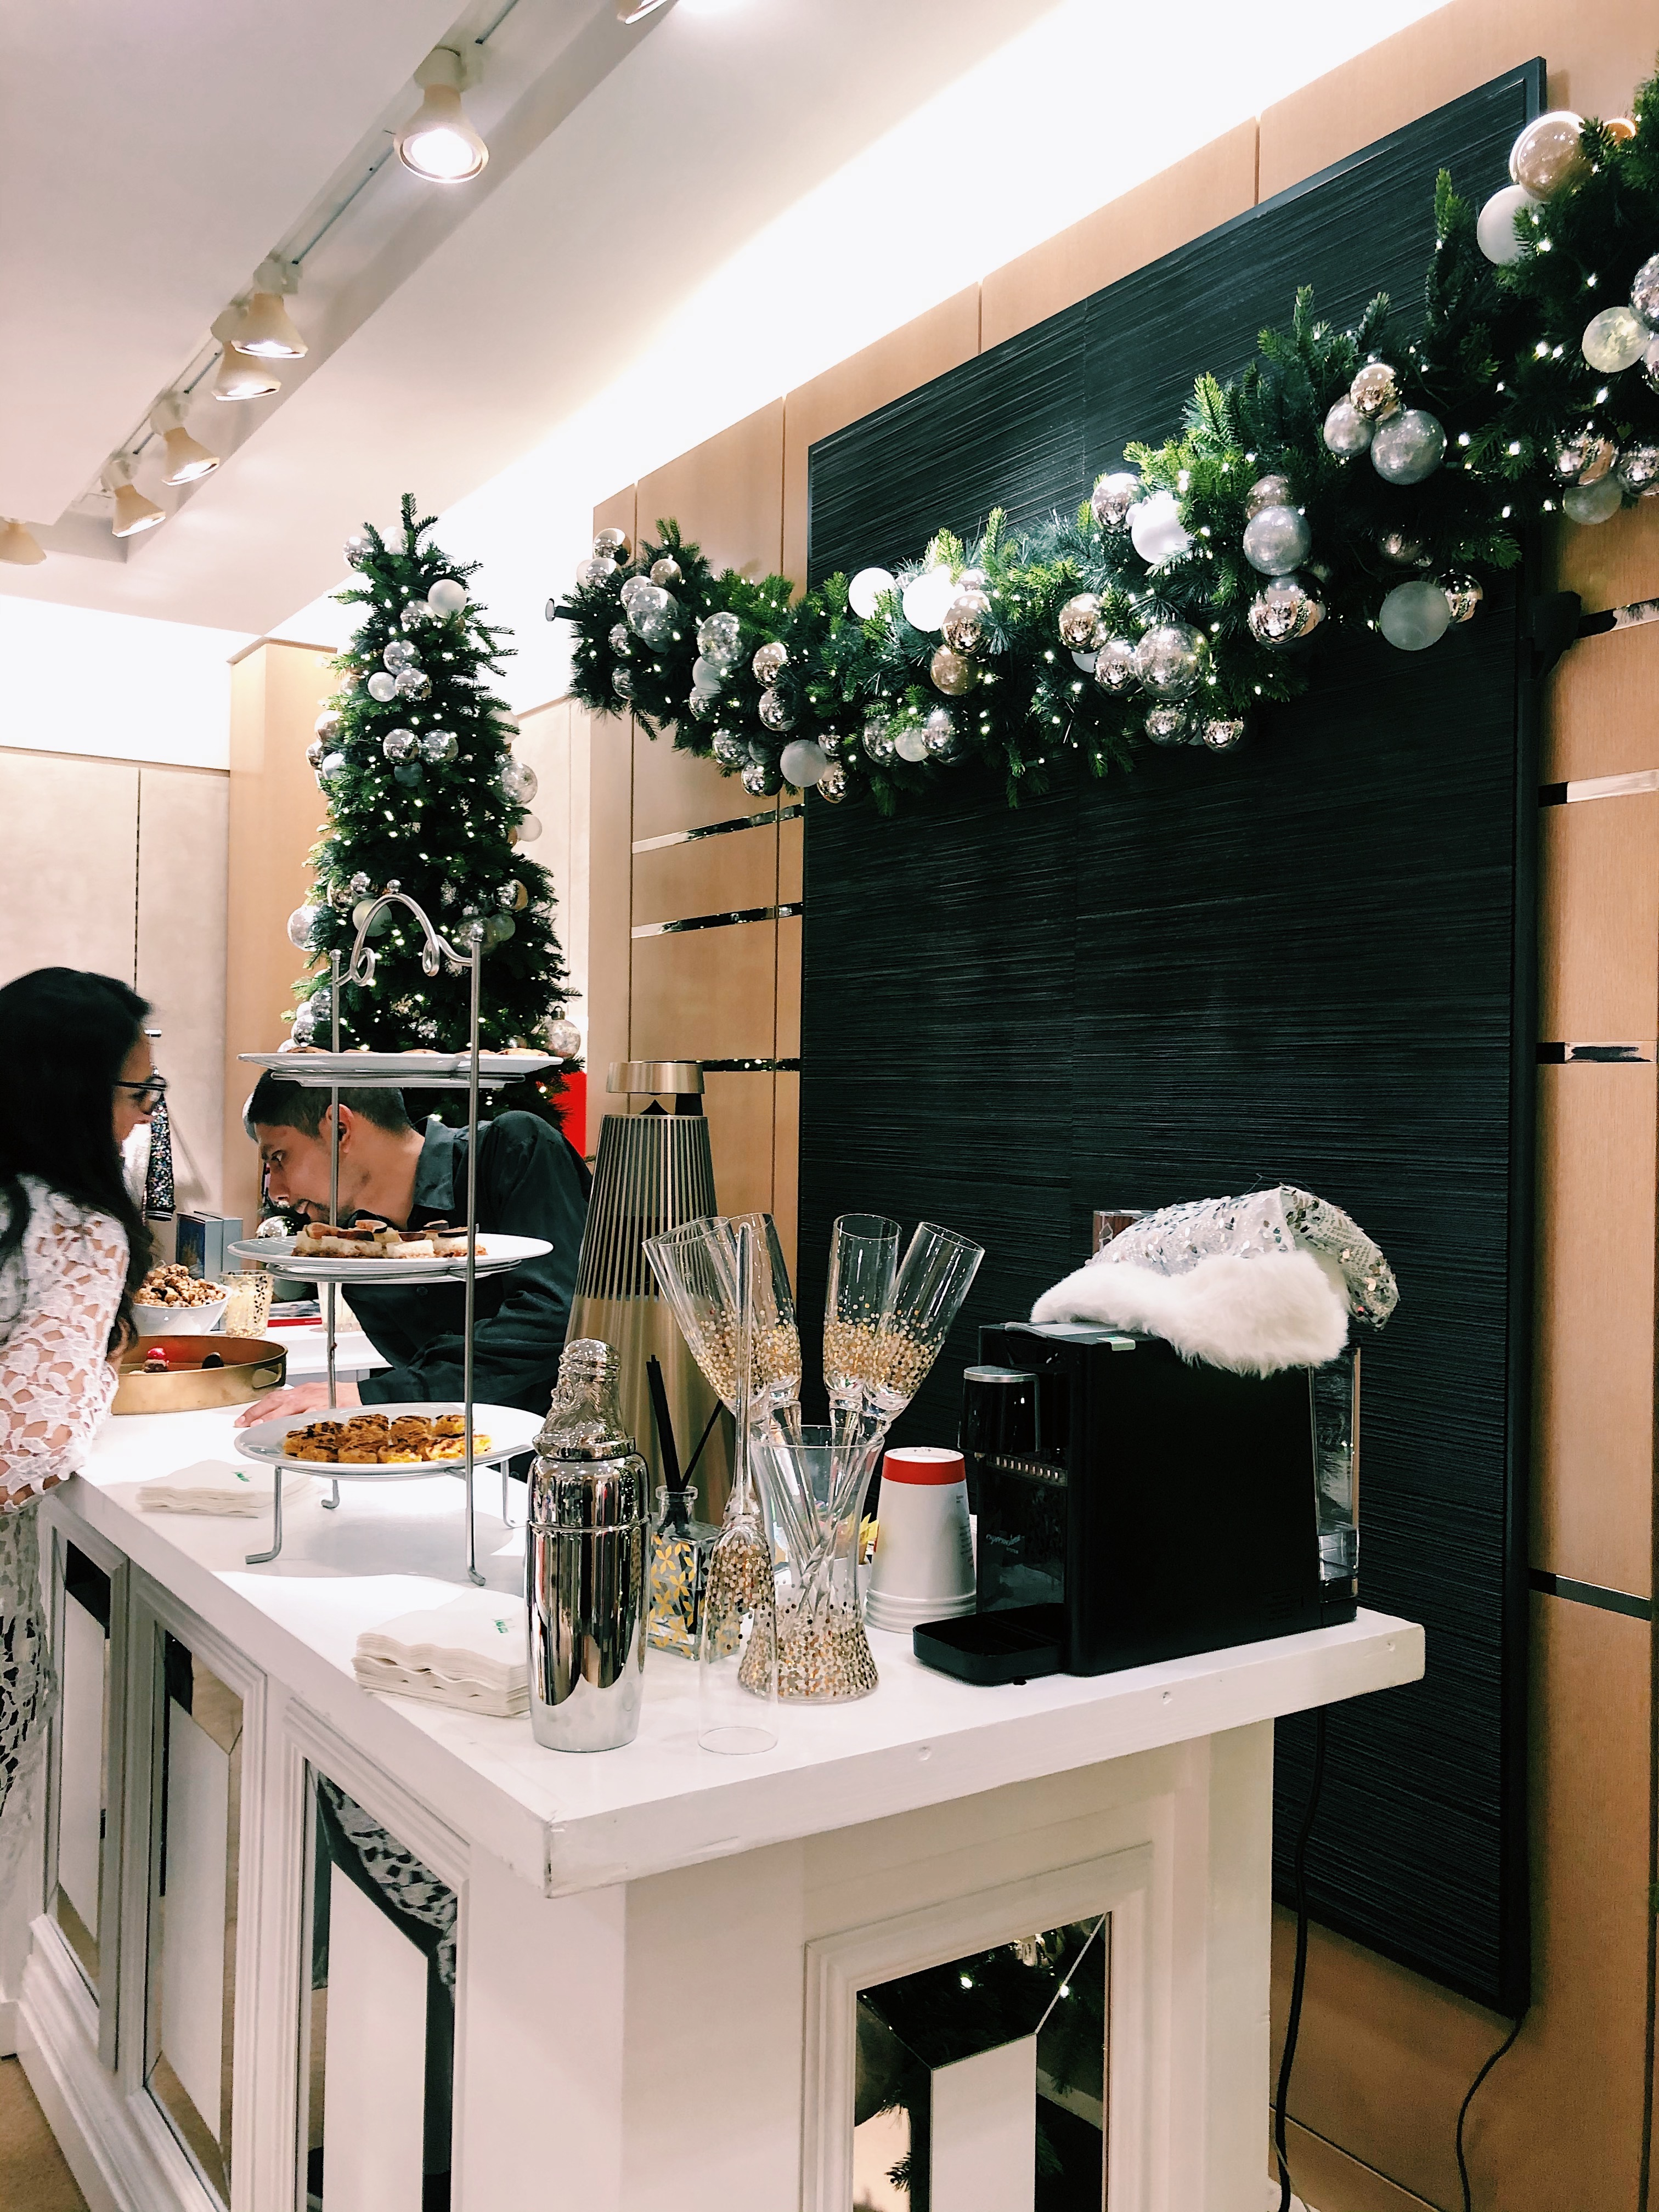 neiman marcus private gifting event